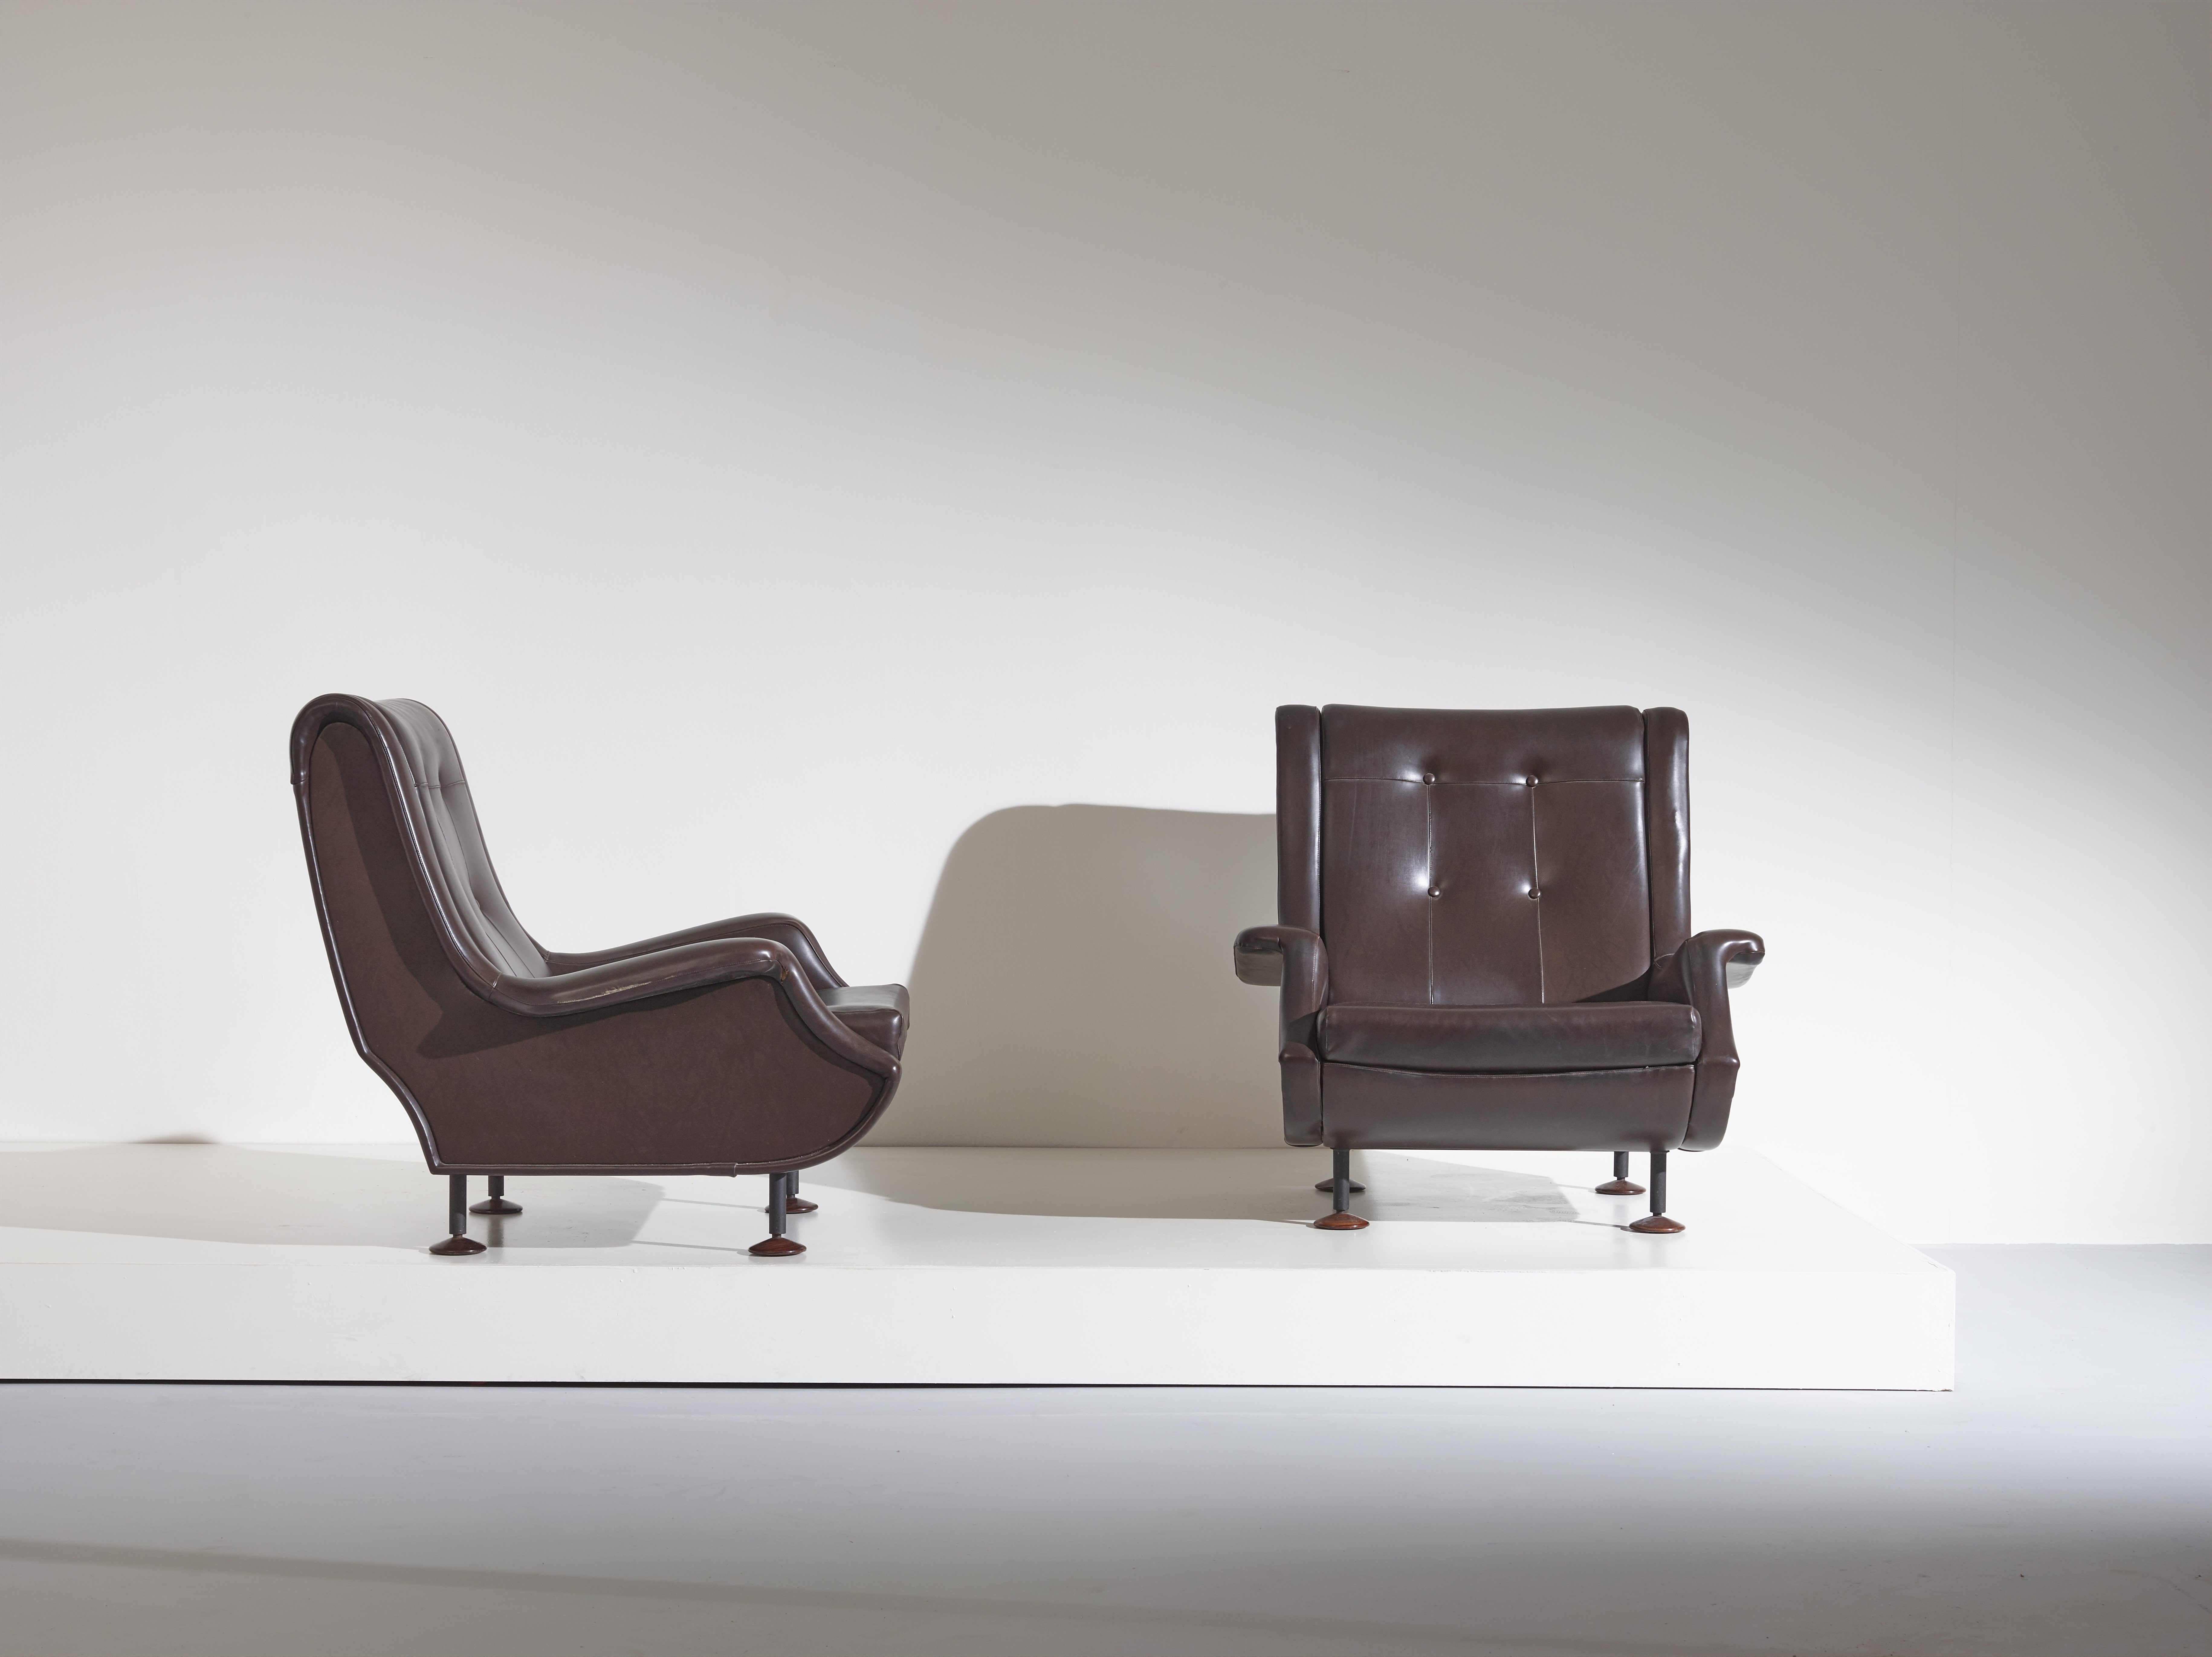 Pair of Regent armchairs designed by Marco Zanuso for Arflex